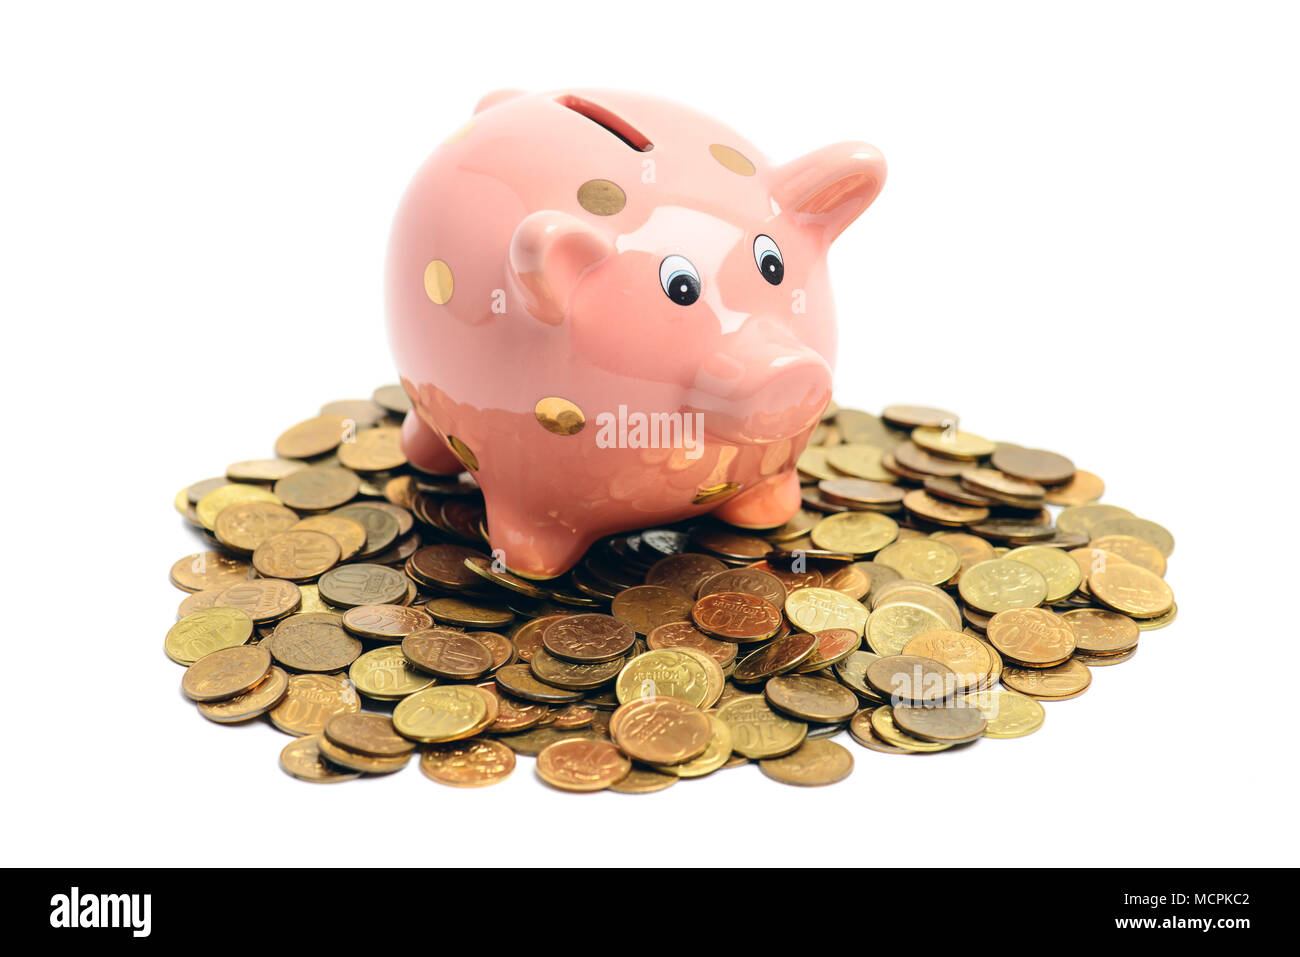 Lucky piggy coin bank on coin heap isolated on white background - Stock Image